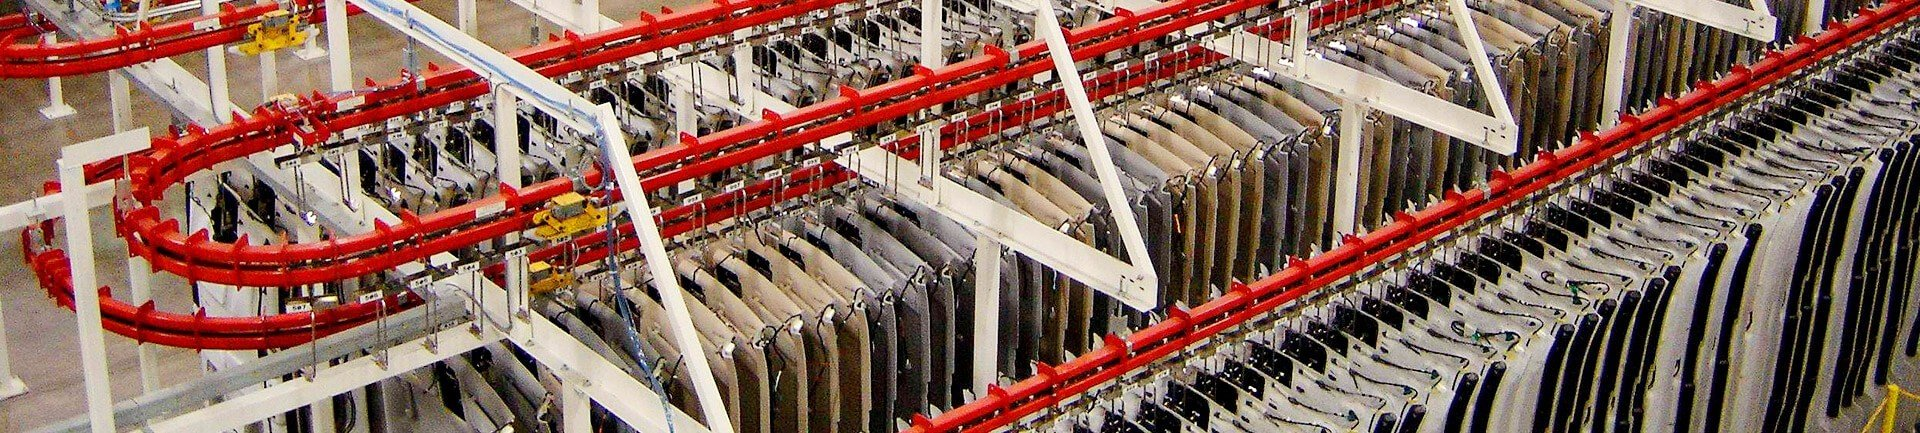 Conveyors for work in progress such as close pack accumulation of product during manufacturing.